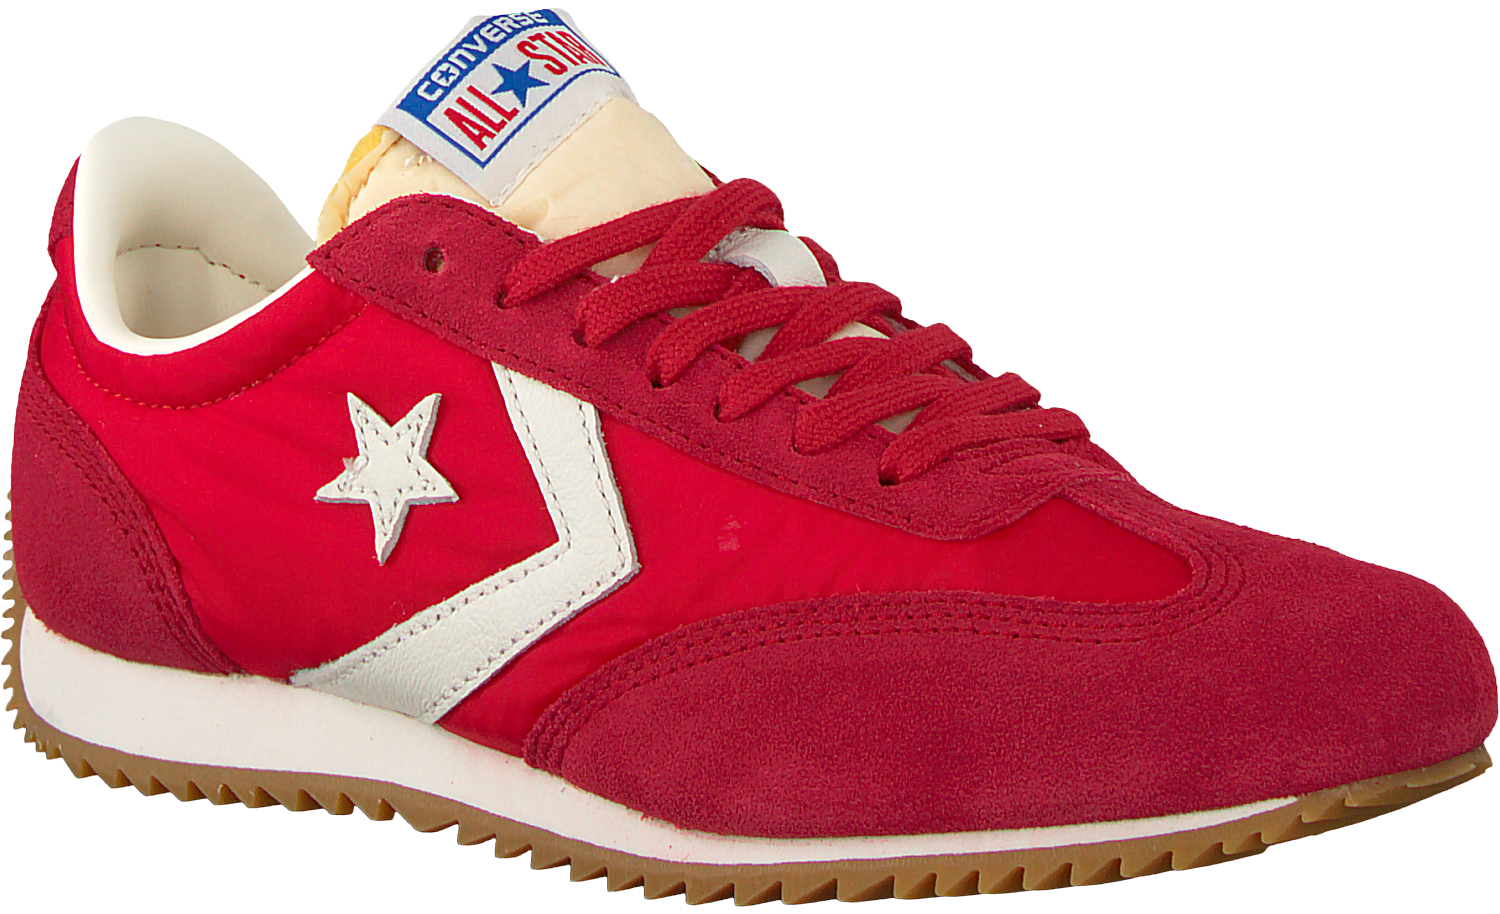 cc7886a1cfcf Red CONVERSE Ballet pumps ALL STAR TRAINER OX ENAMEL RE. CONVERSE. -30%.  Previous